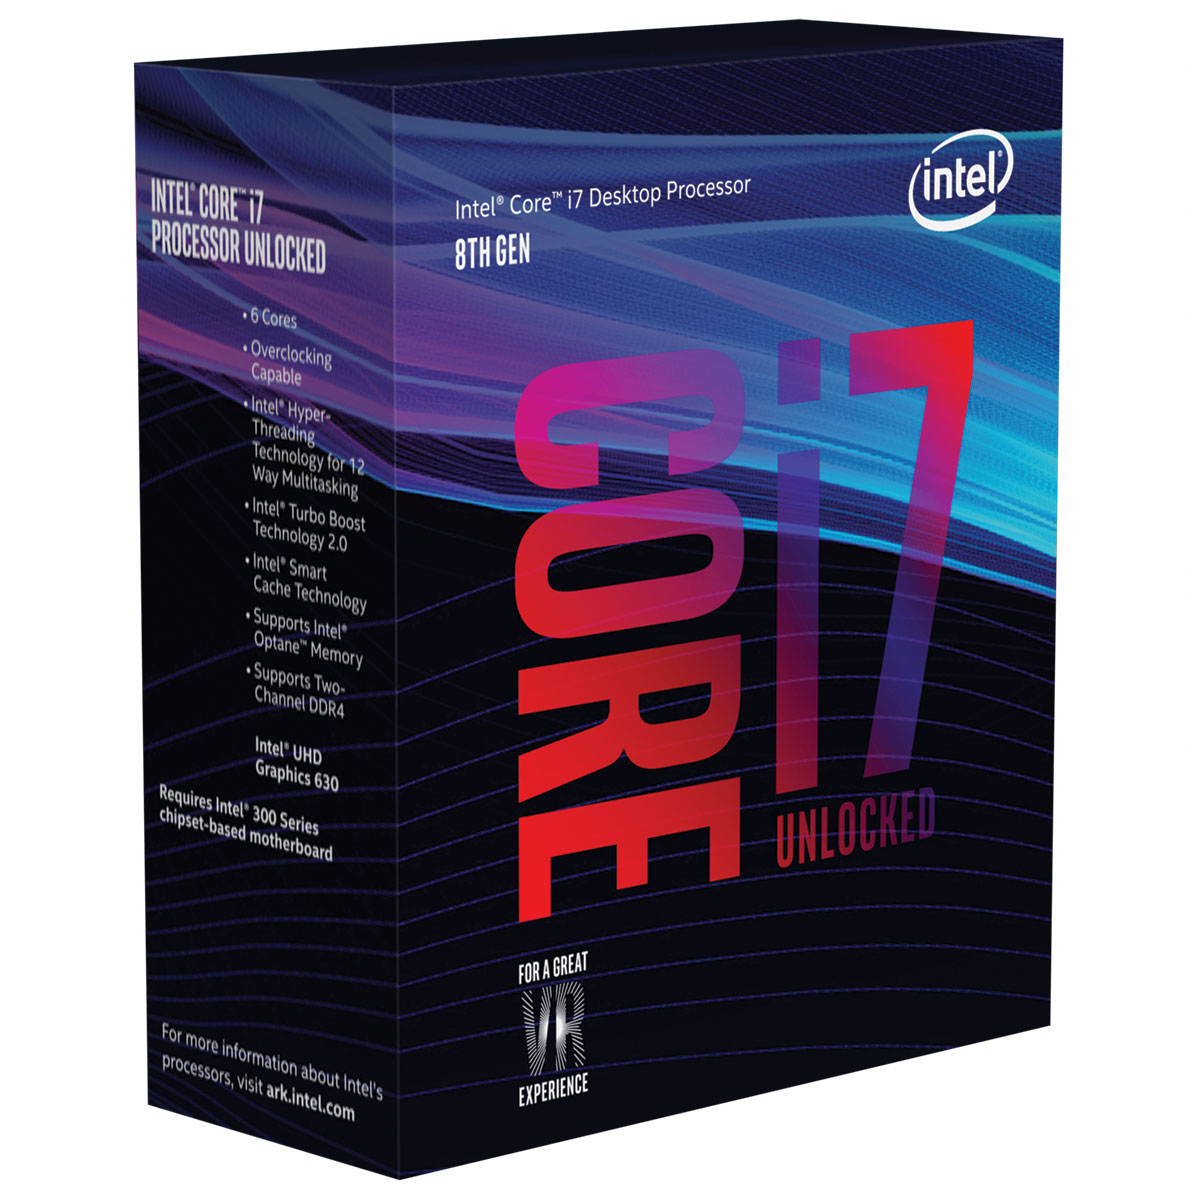 Processeur Intel Core i7-8700K (3.7 GHz) Processeur 6-Core Socket 1151 Cache L3 12 Mo Intel UHD Graphics 630 0.014 micron (version boîte sans ventilateur - garantie Intel 3 ans)